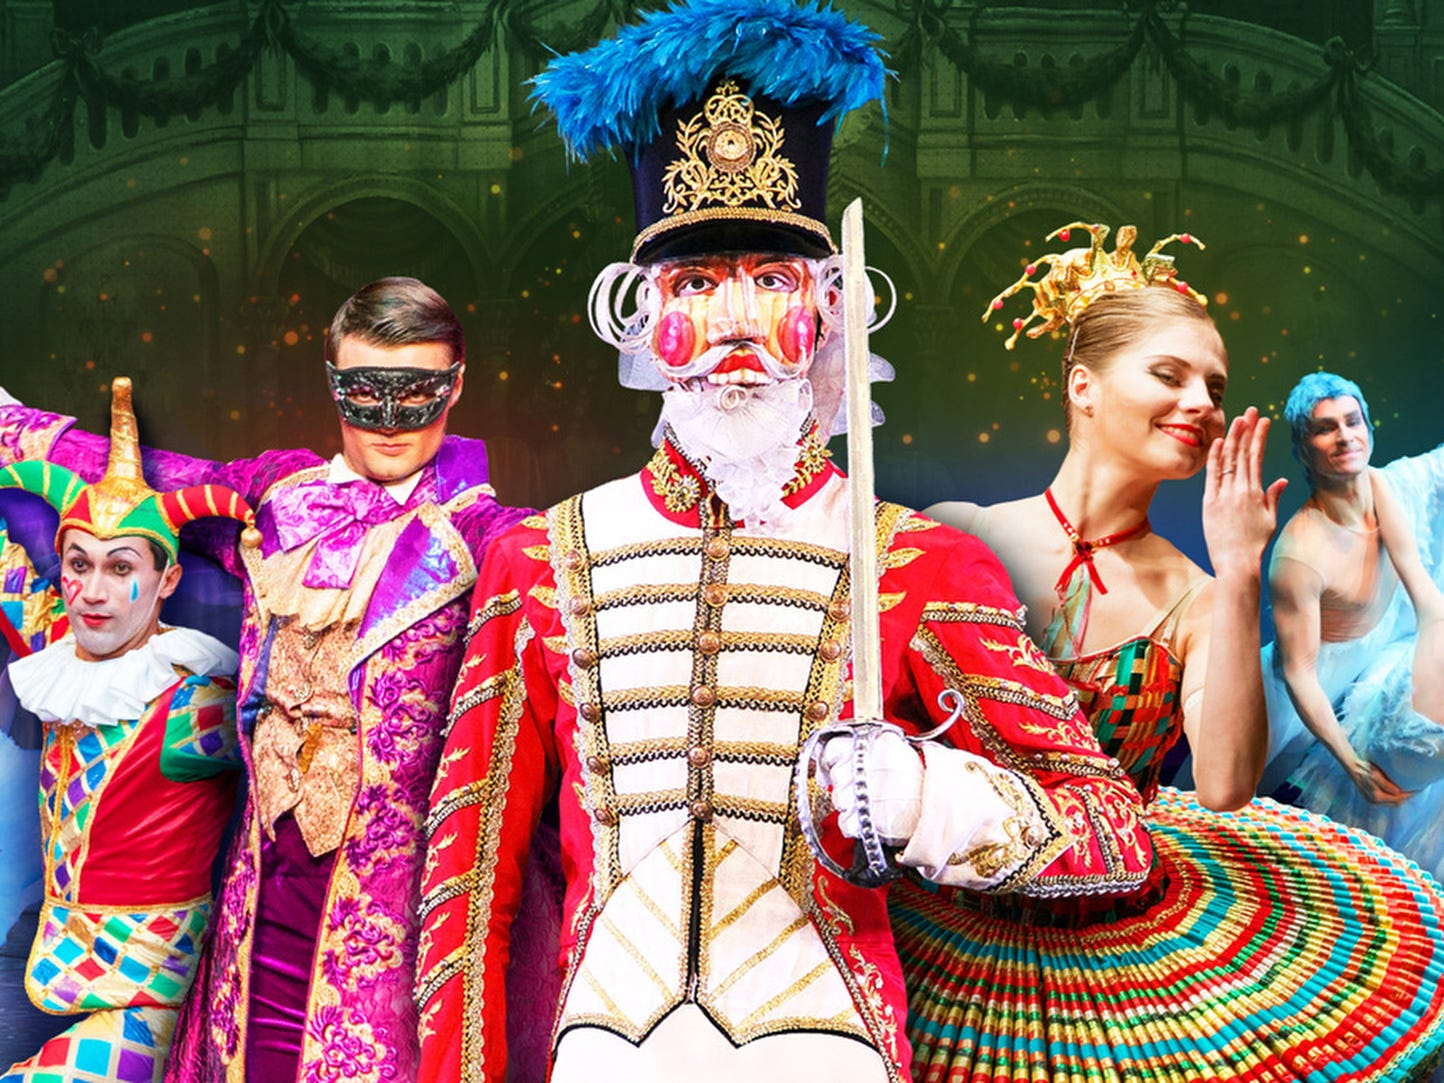 Dec. 24 MOSCOW BALLET'S GREAT RUSSIAN NUTCRACKER: 3 p.m. Ryman Auditorium, $30-$91